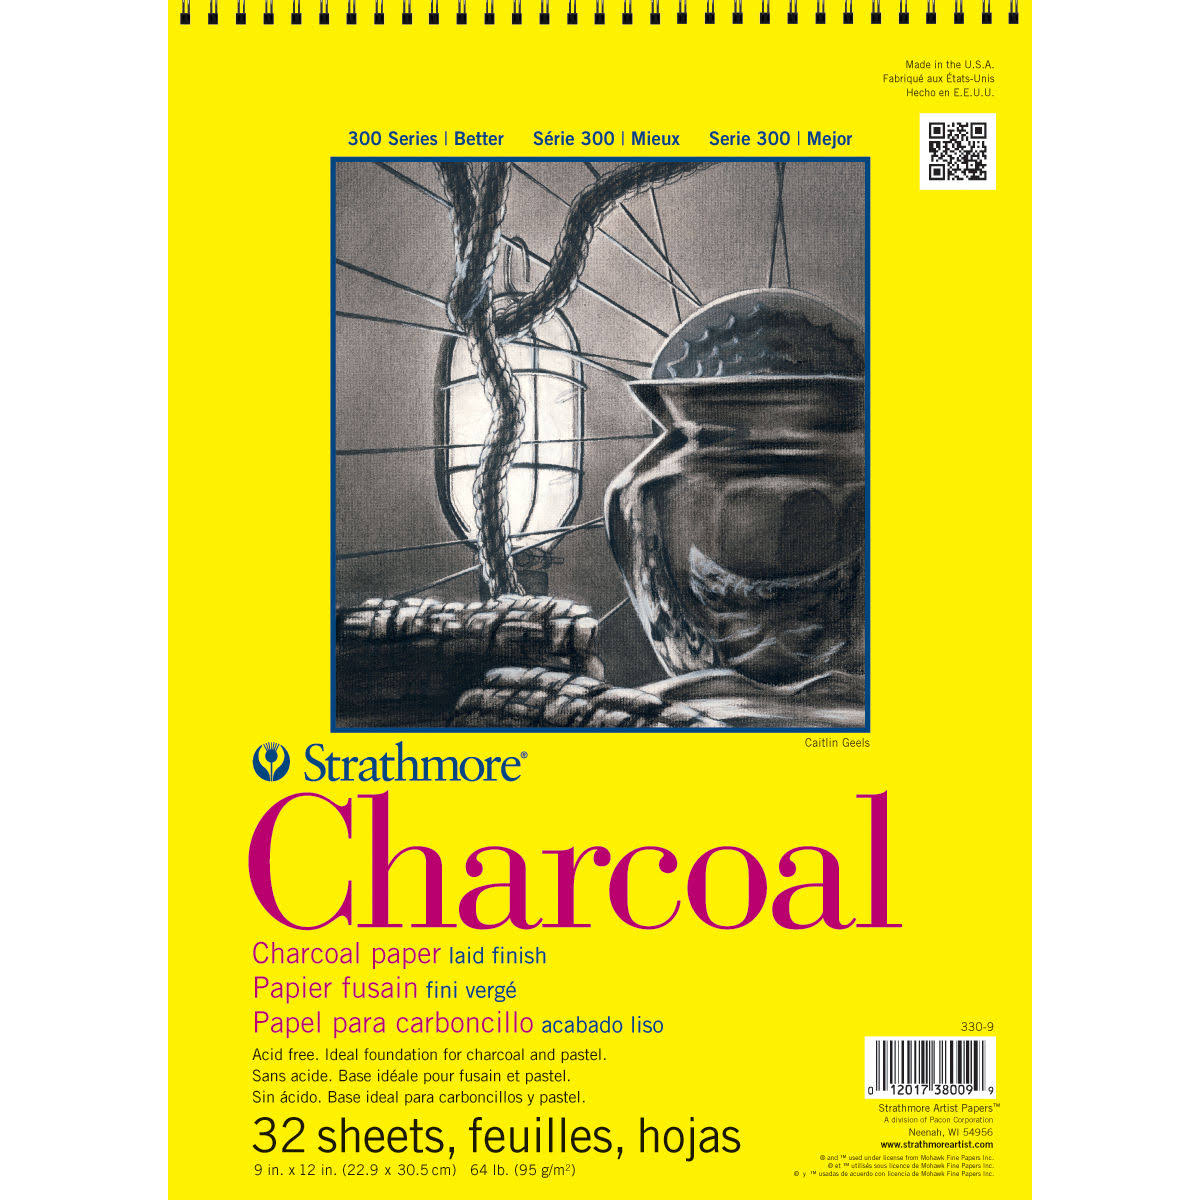 Strathmore Charcoal Paper Pad - 32 Sheets